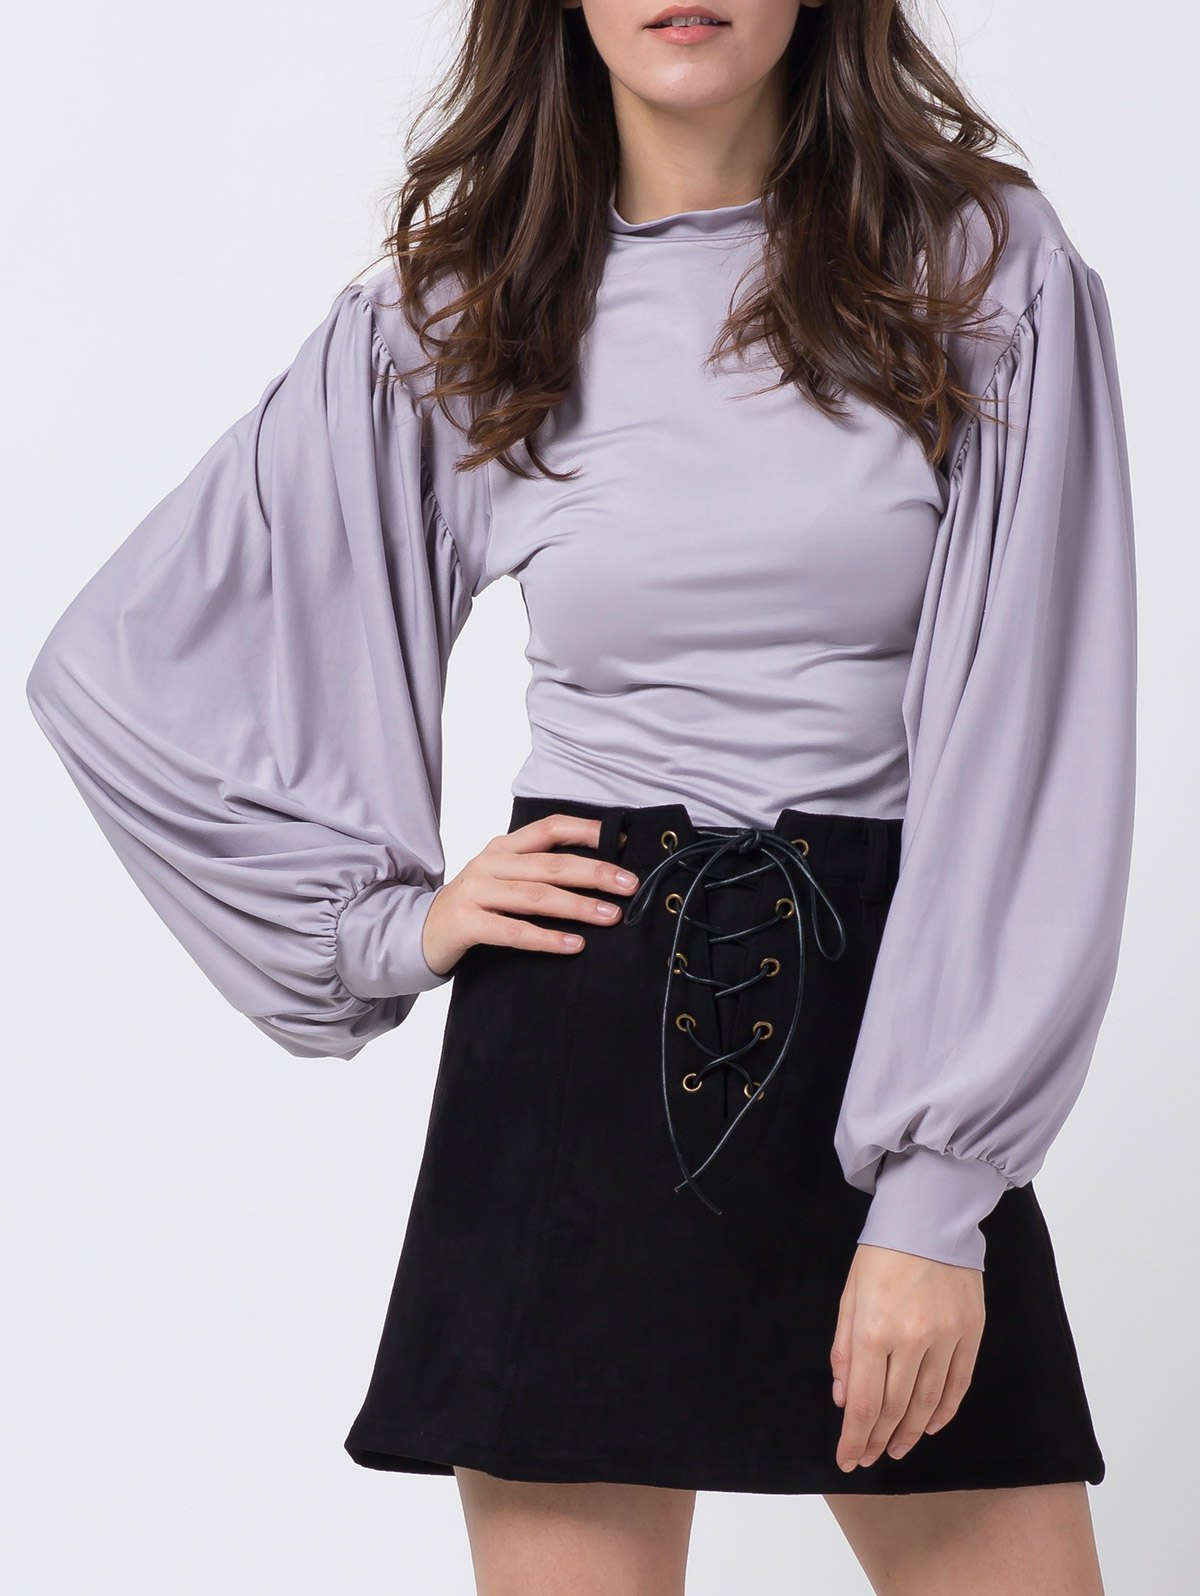 Lantern Sleeve Fitted T-ShirtClothes<br><br><br>Size: XS<br>Color: GRAY